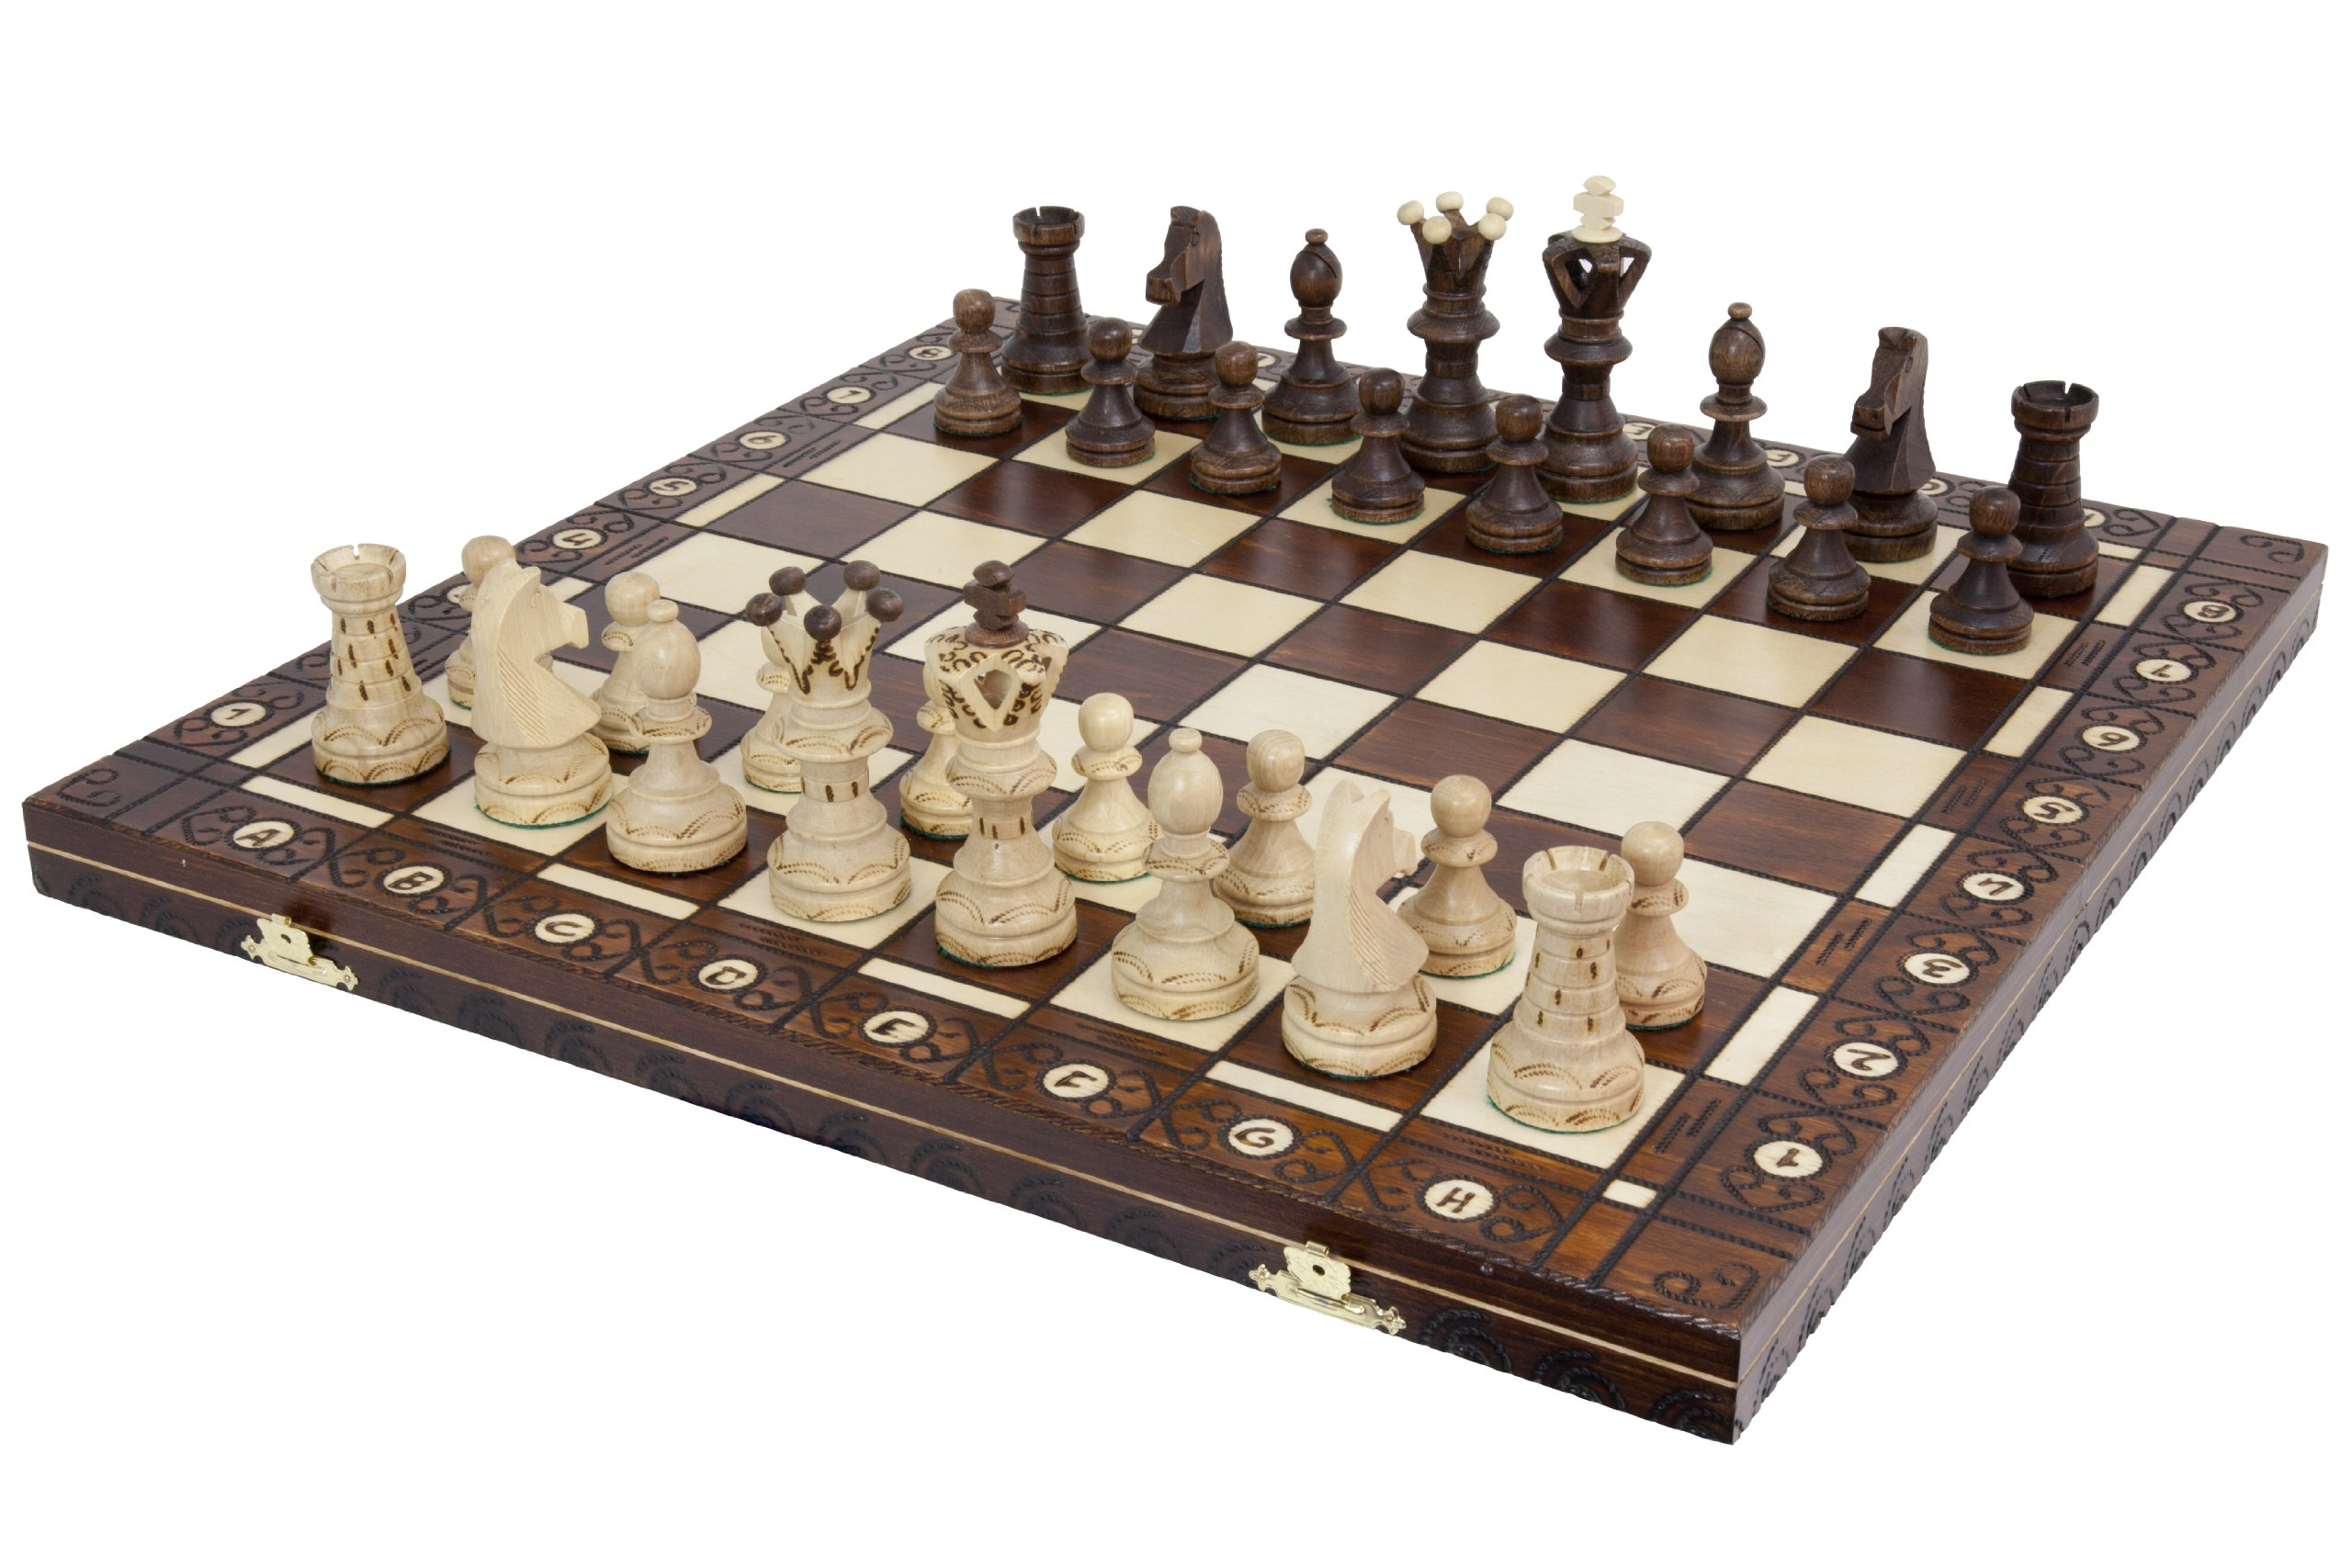 Wegiel Handmade European Ambassador Chess Set - Wooden 21 Inch Beech & Birch Board With Felt Base - Carved Hornbeam & Sycamore Wood Chess Pieces - Compartment Inside The Board To Store Each Piece